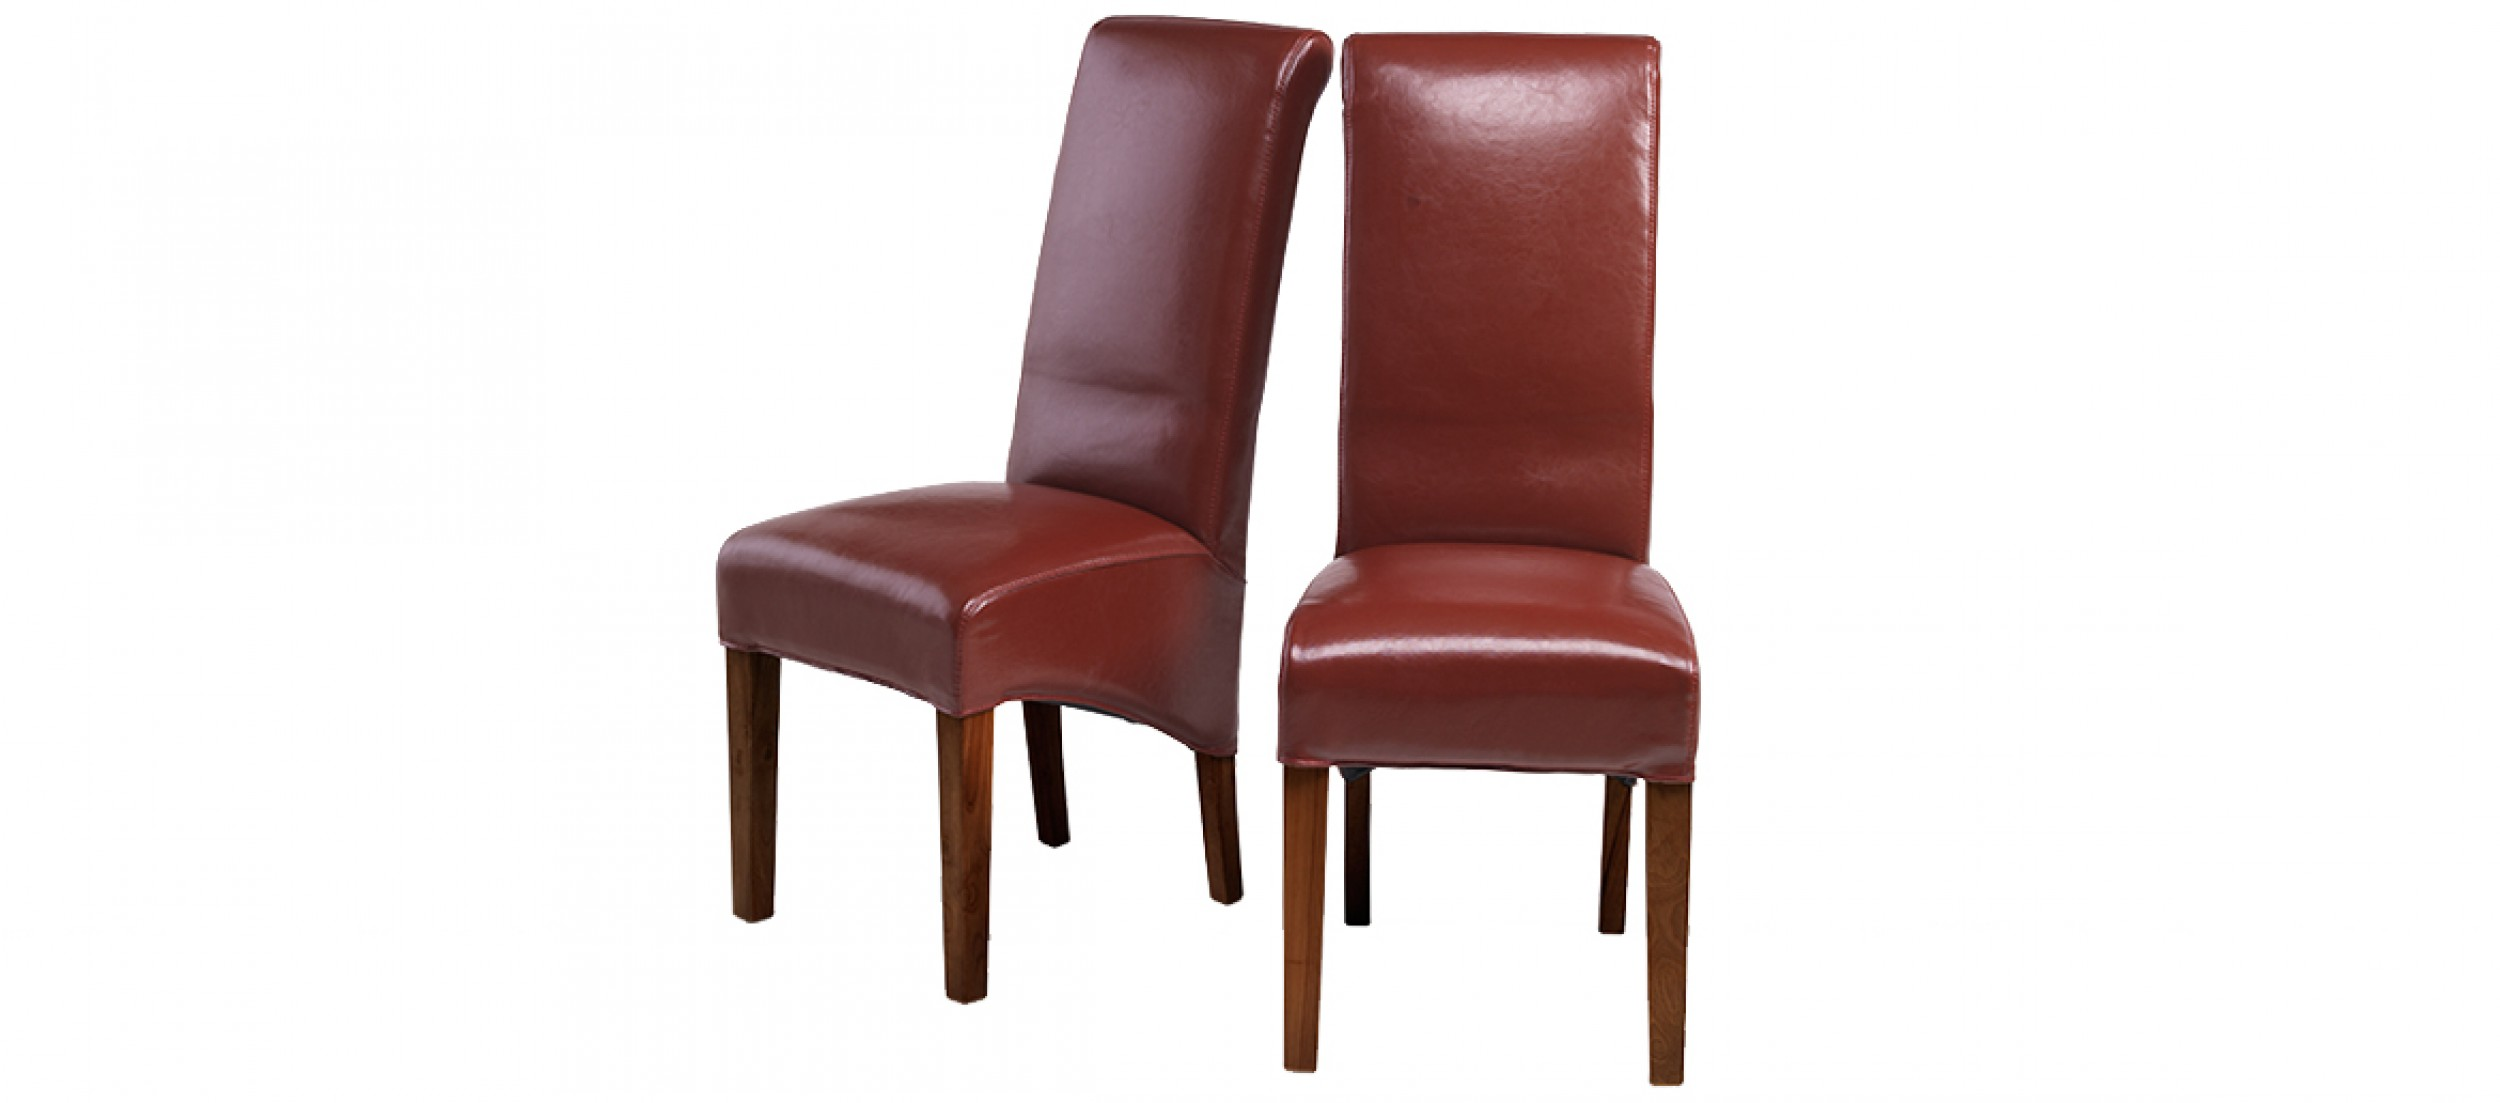 Best of red dining room chairs uk light of dining room for Dining room furniture uk